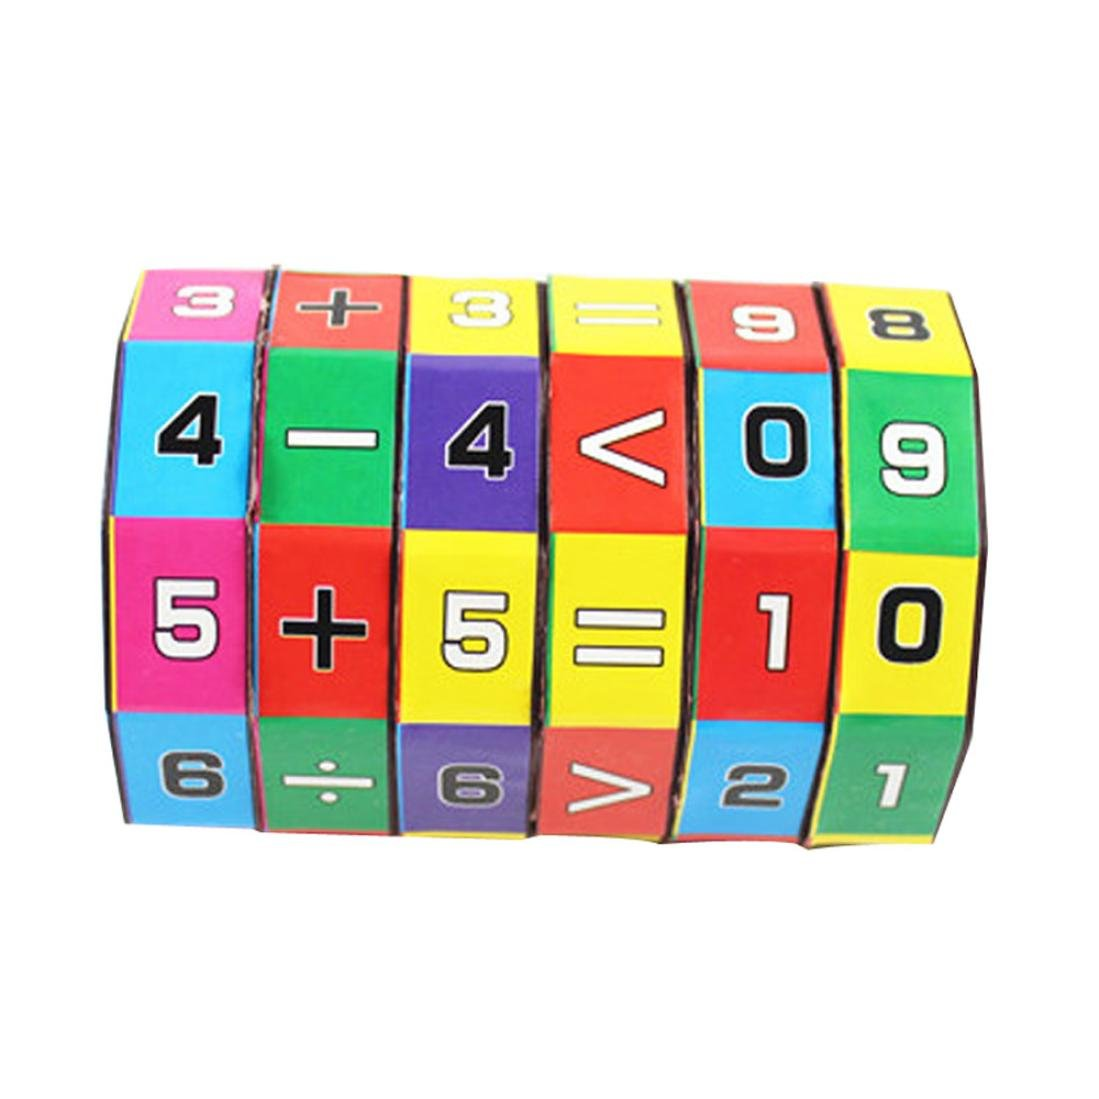 Weiyun New Children Kids Mathematics Numbers Magic Cube Toy Puzzle Game Gift